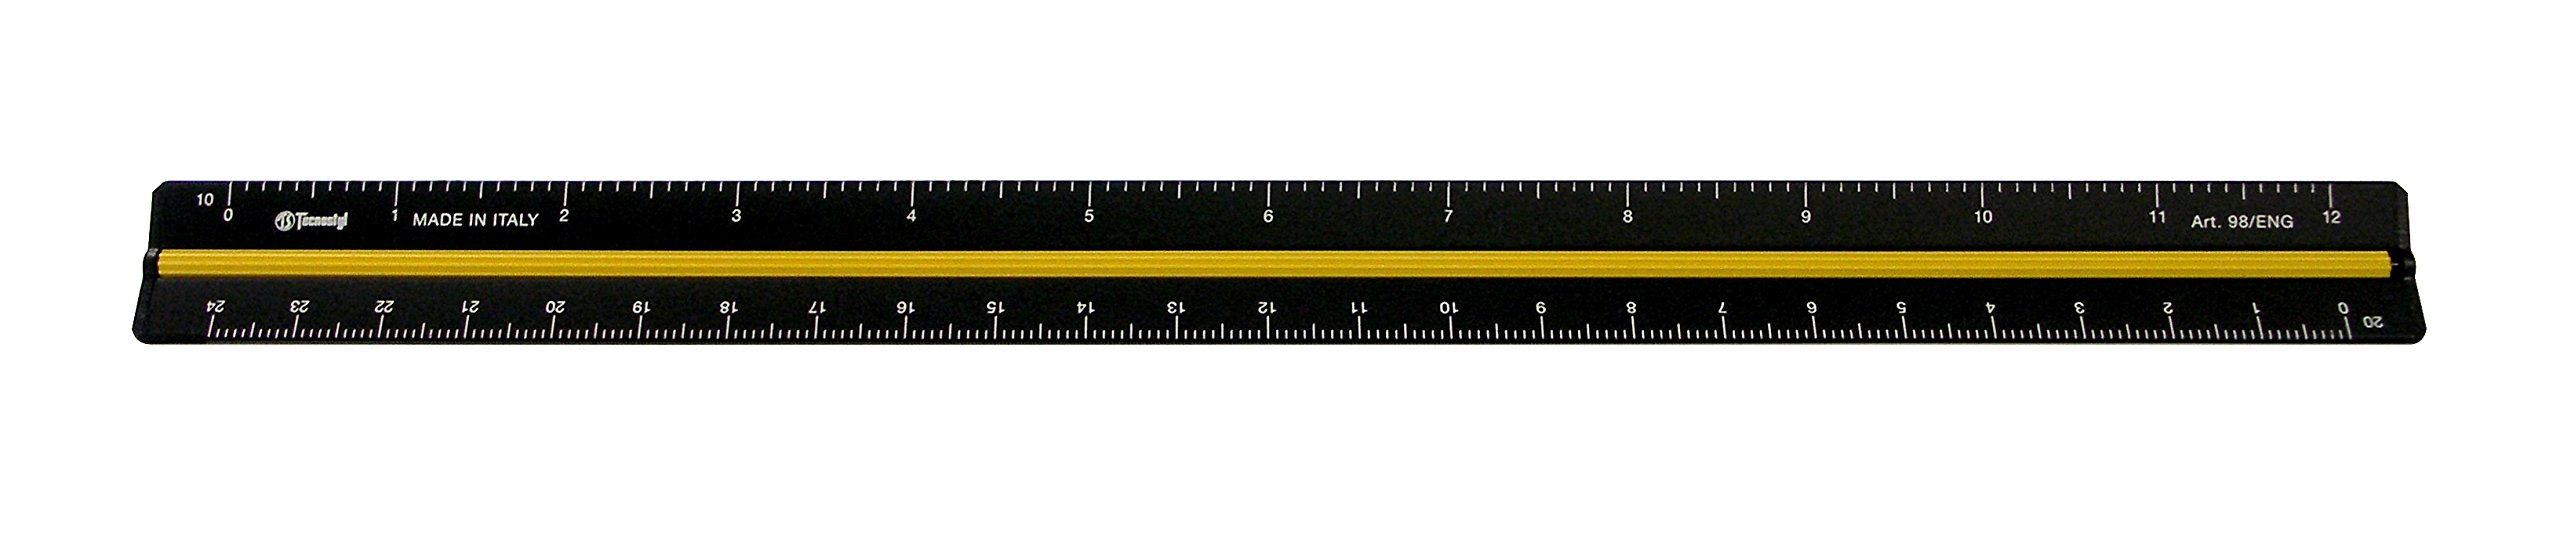 Alvin 98/ENG 12'' Black Aluminum Engineer Triangular Scale by Alvin (Image #1)